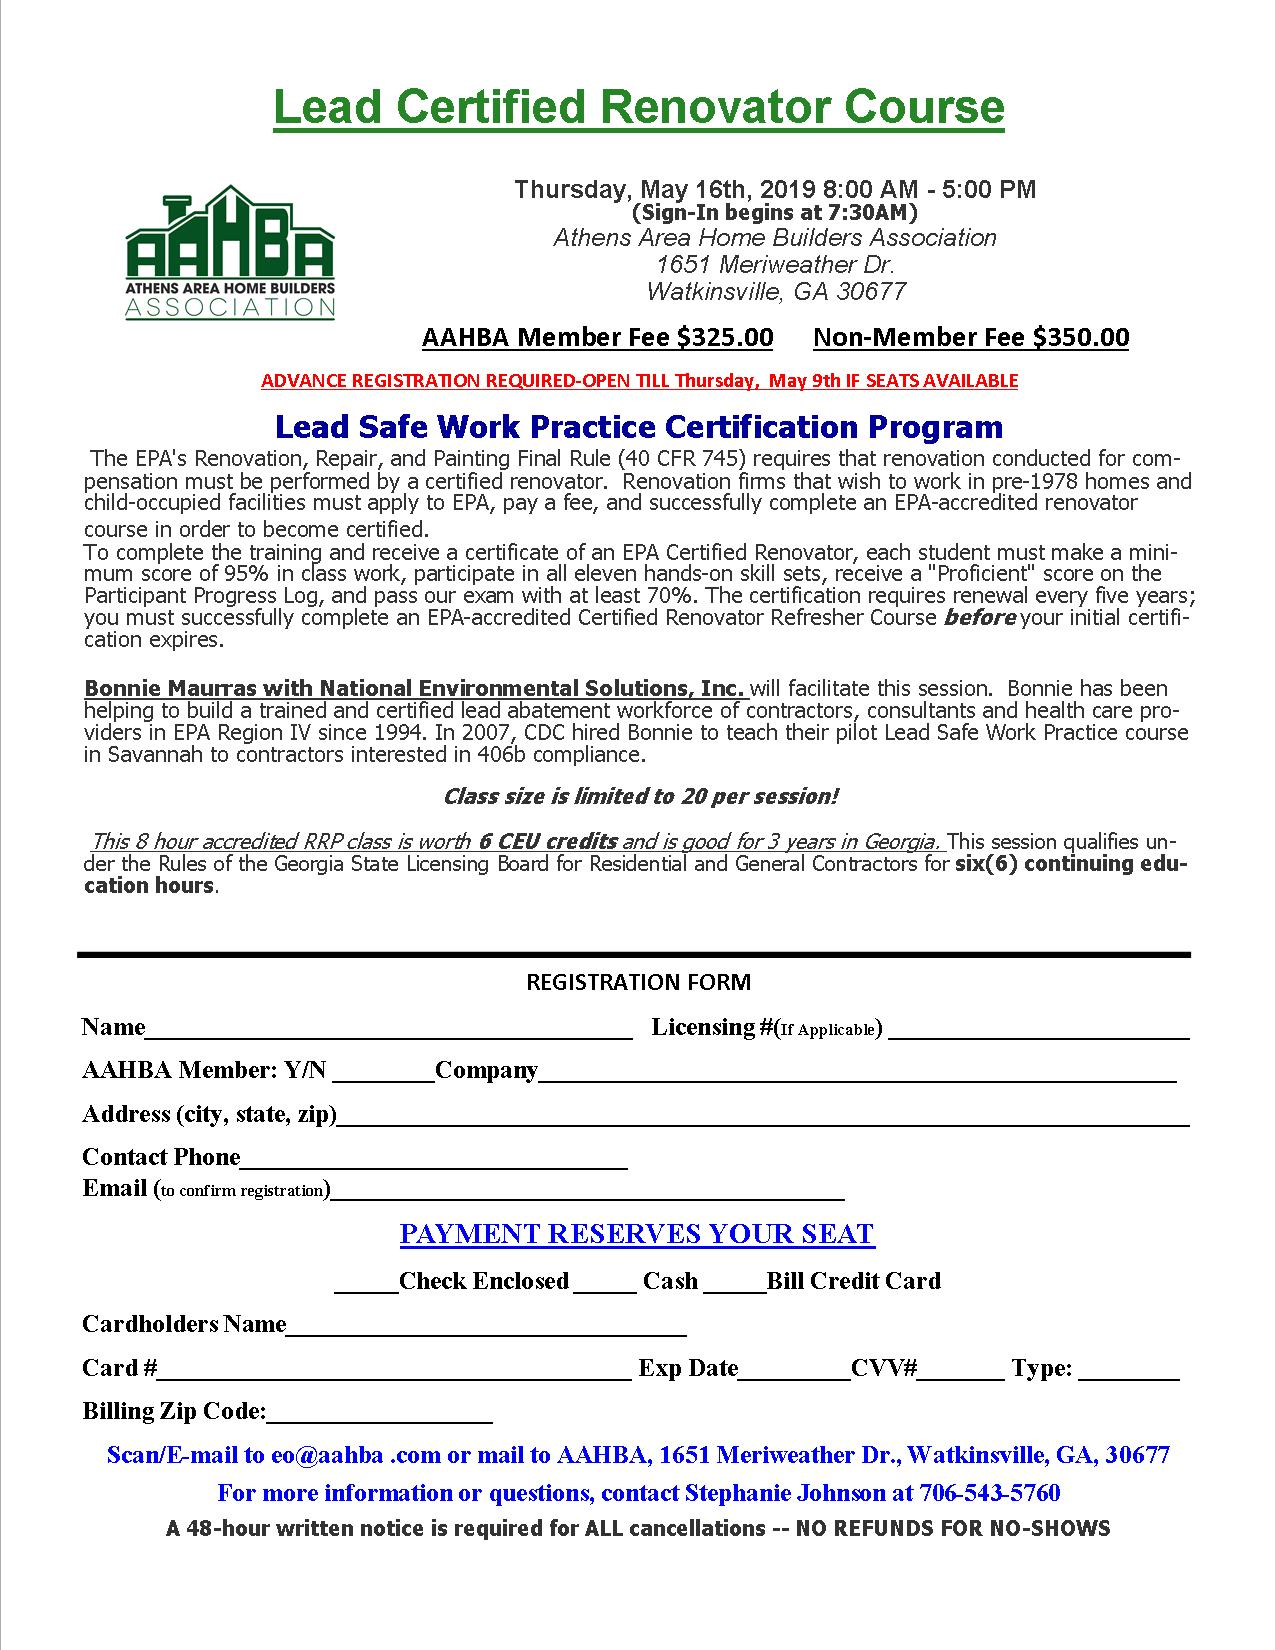 Lead RRP Course Registration Form